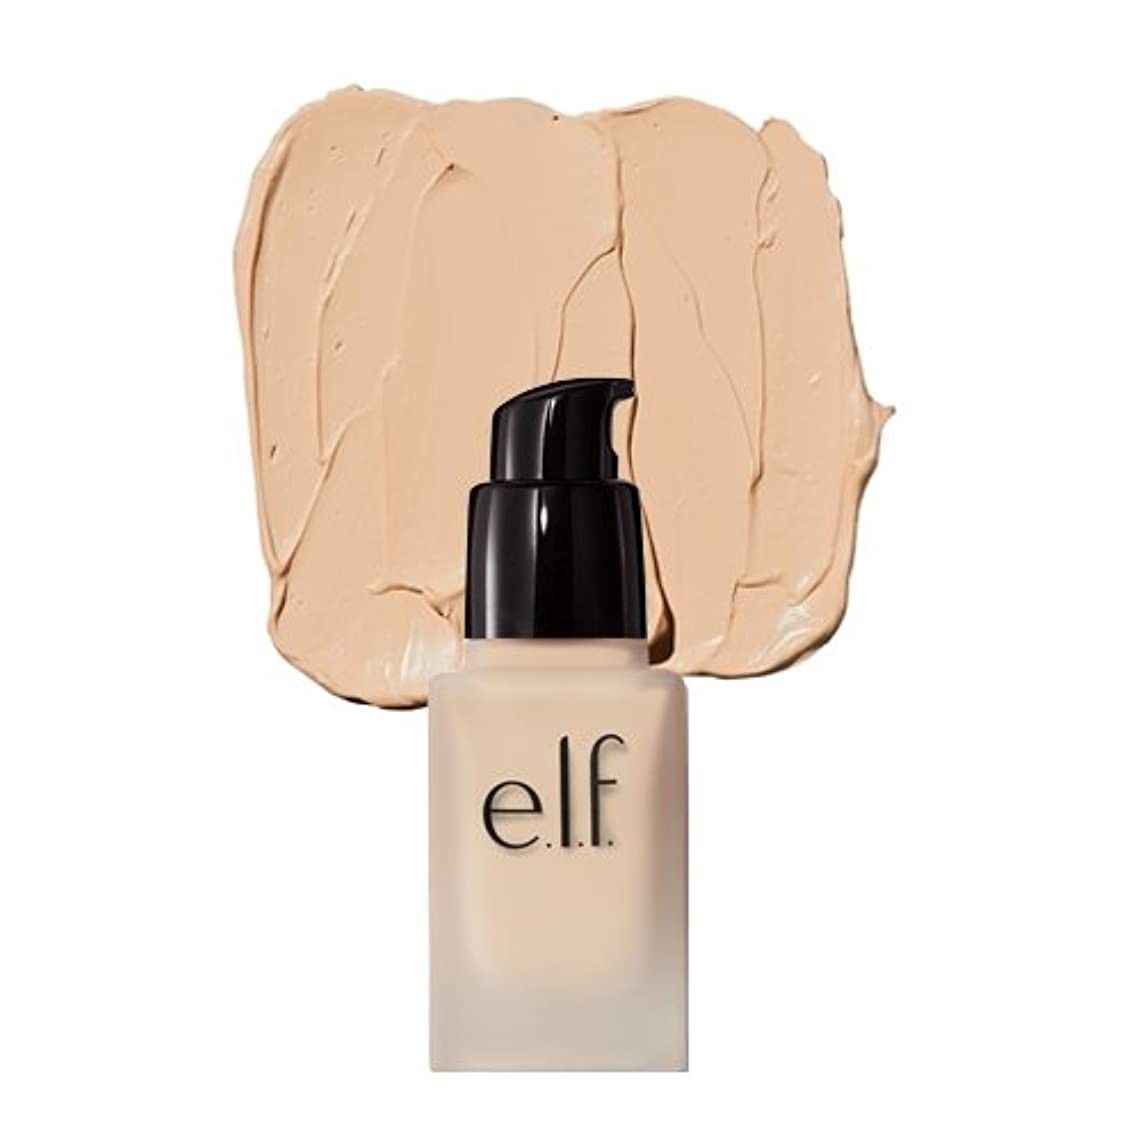 従う入場料議会(3 Pack) e.l.f. Oil Free Flawless Finish Foundation - Light Ivory (並行輸入品)